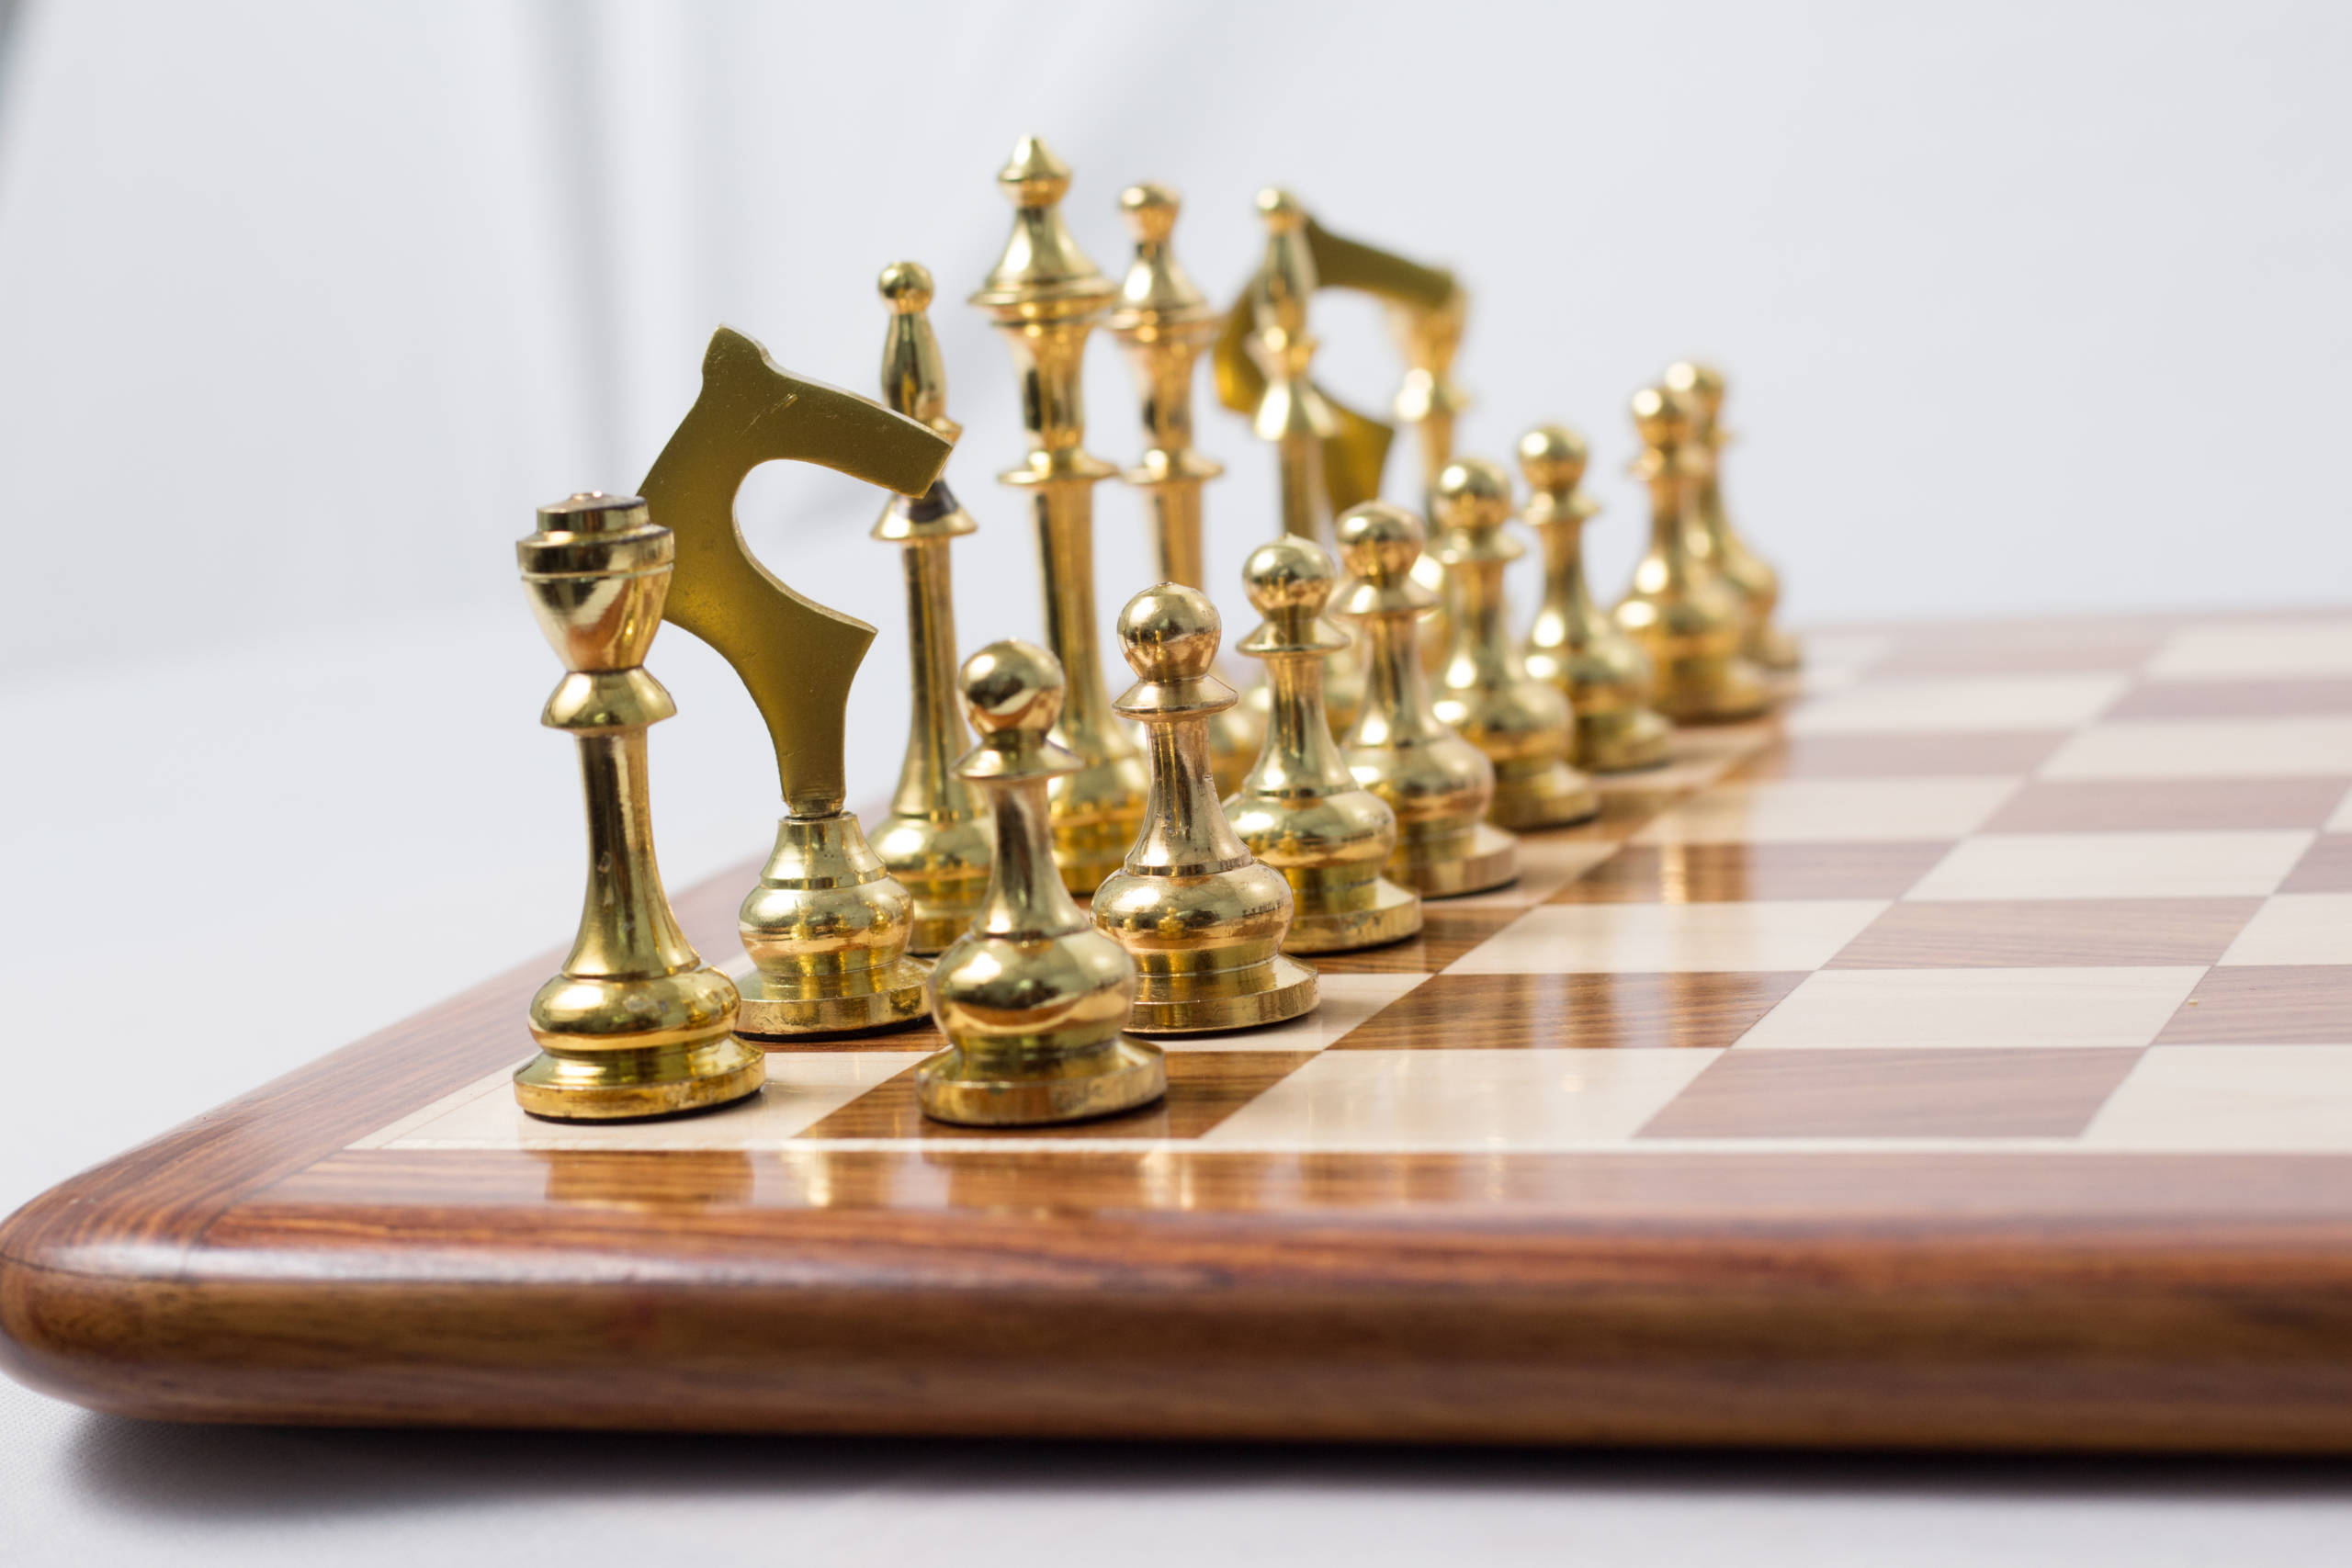 The different pieces in a chess game